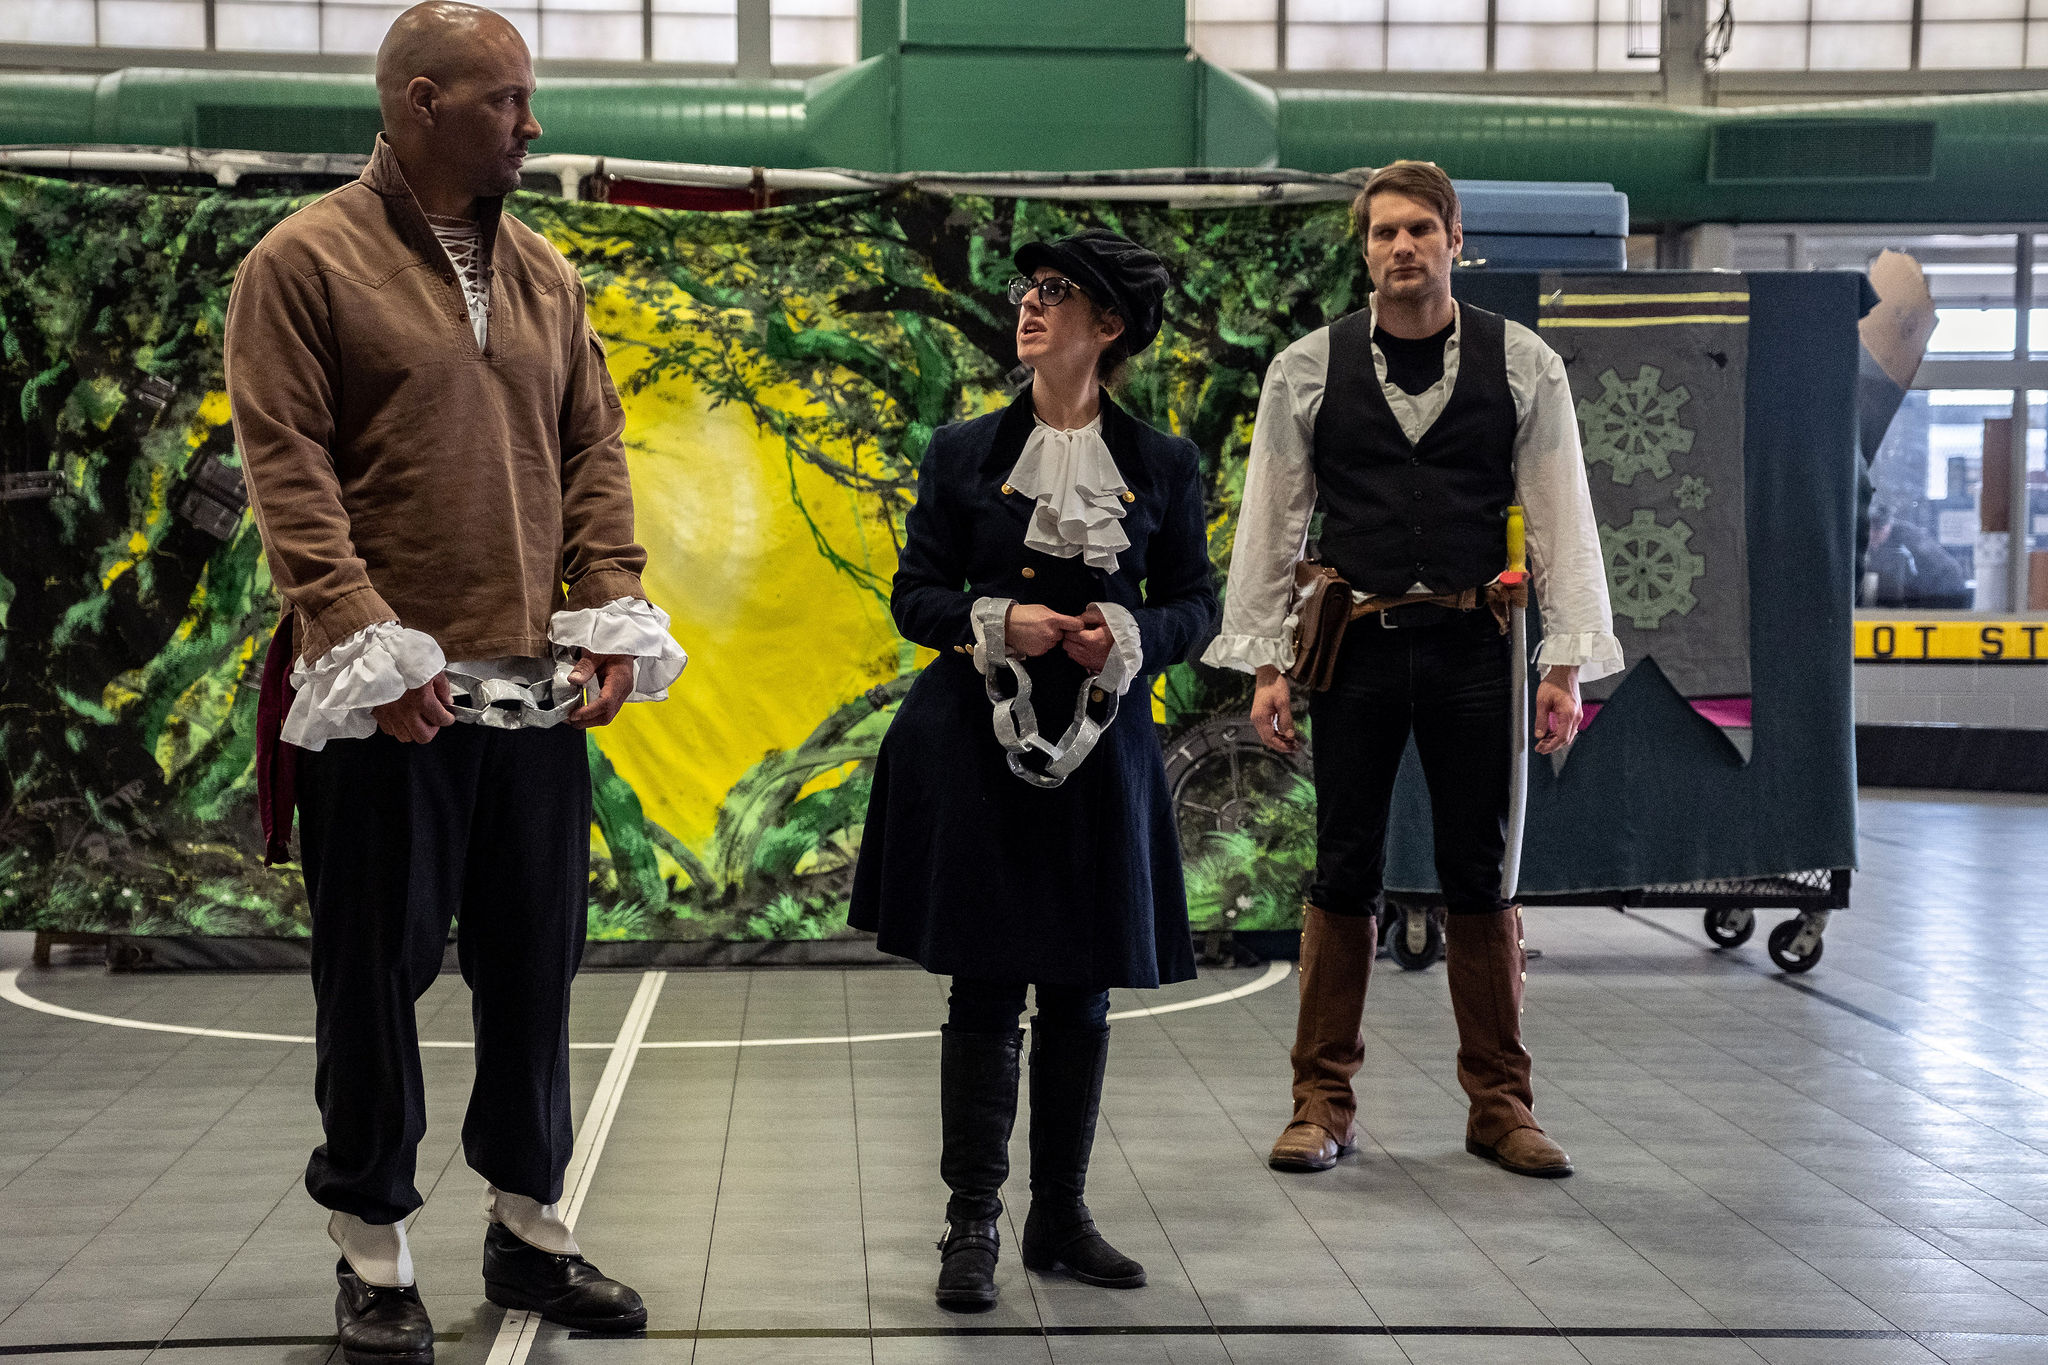 King Lear, Frannie (as Cordelia), and Matthew (as Knight) in  King Lear.